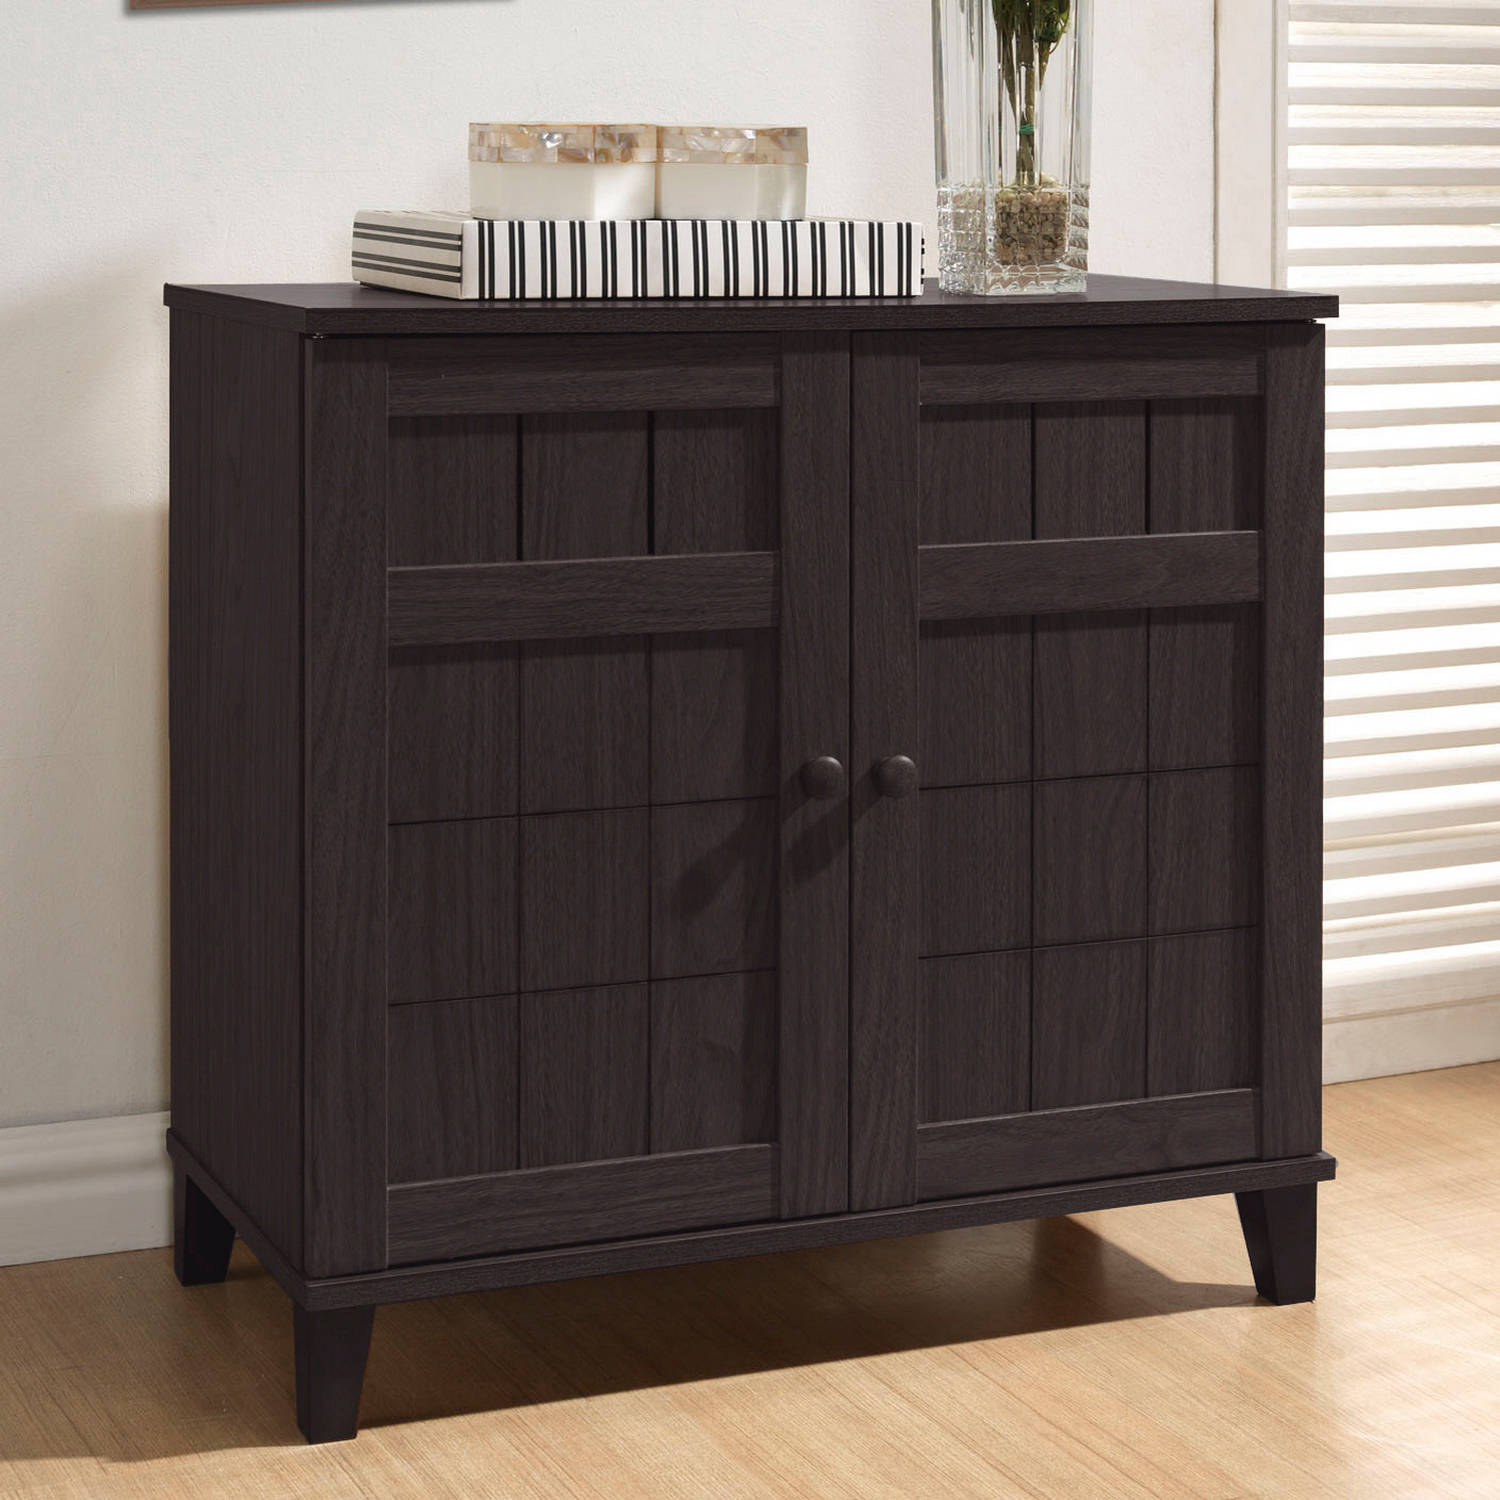 Baxton Studio Glidden Dark Brown Wood Modern Shoe Cabinet   Walmart.com